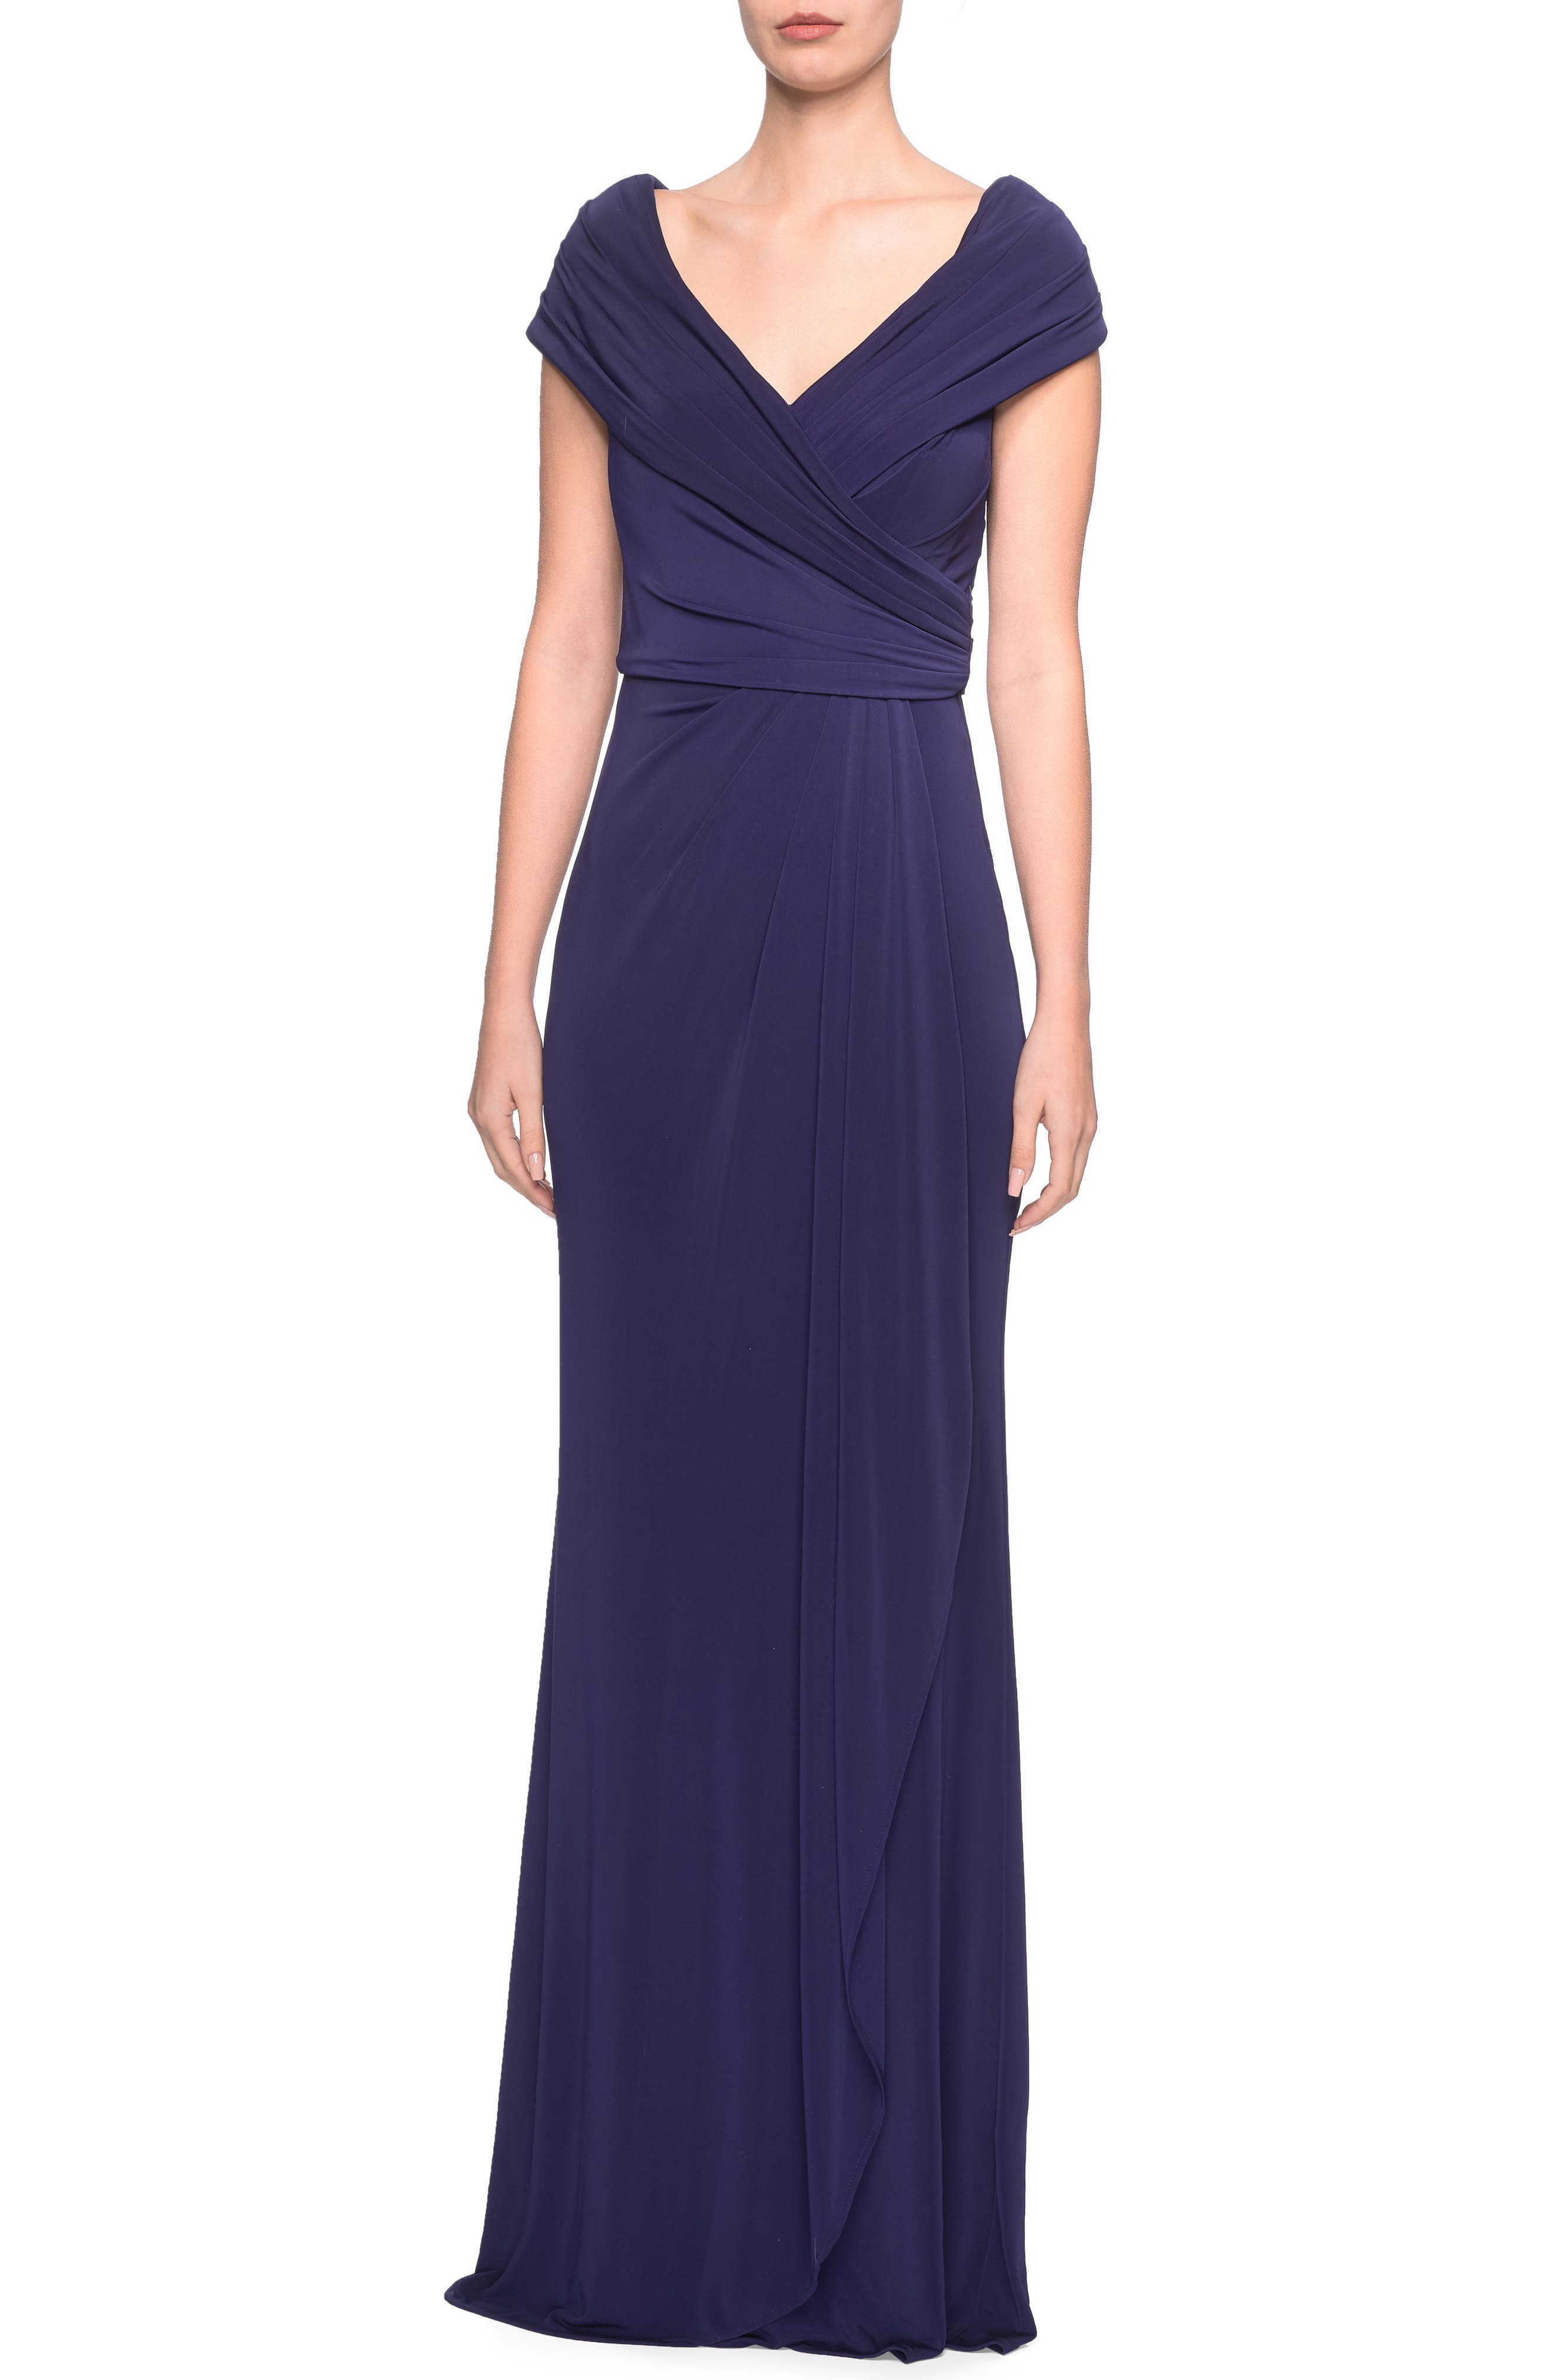 La Femme Ruched Jersey Gown, 8 (similar to 16W-18W) - Blue